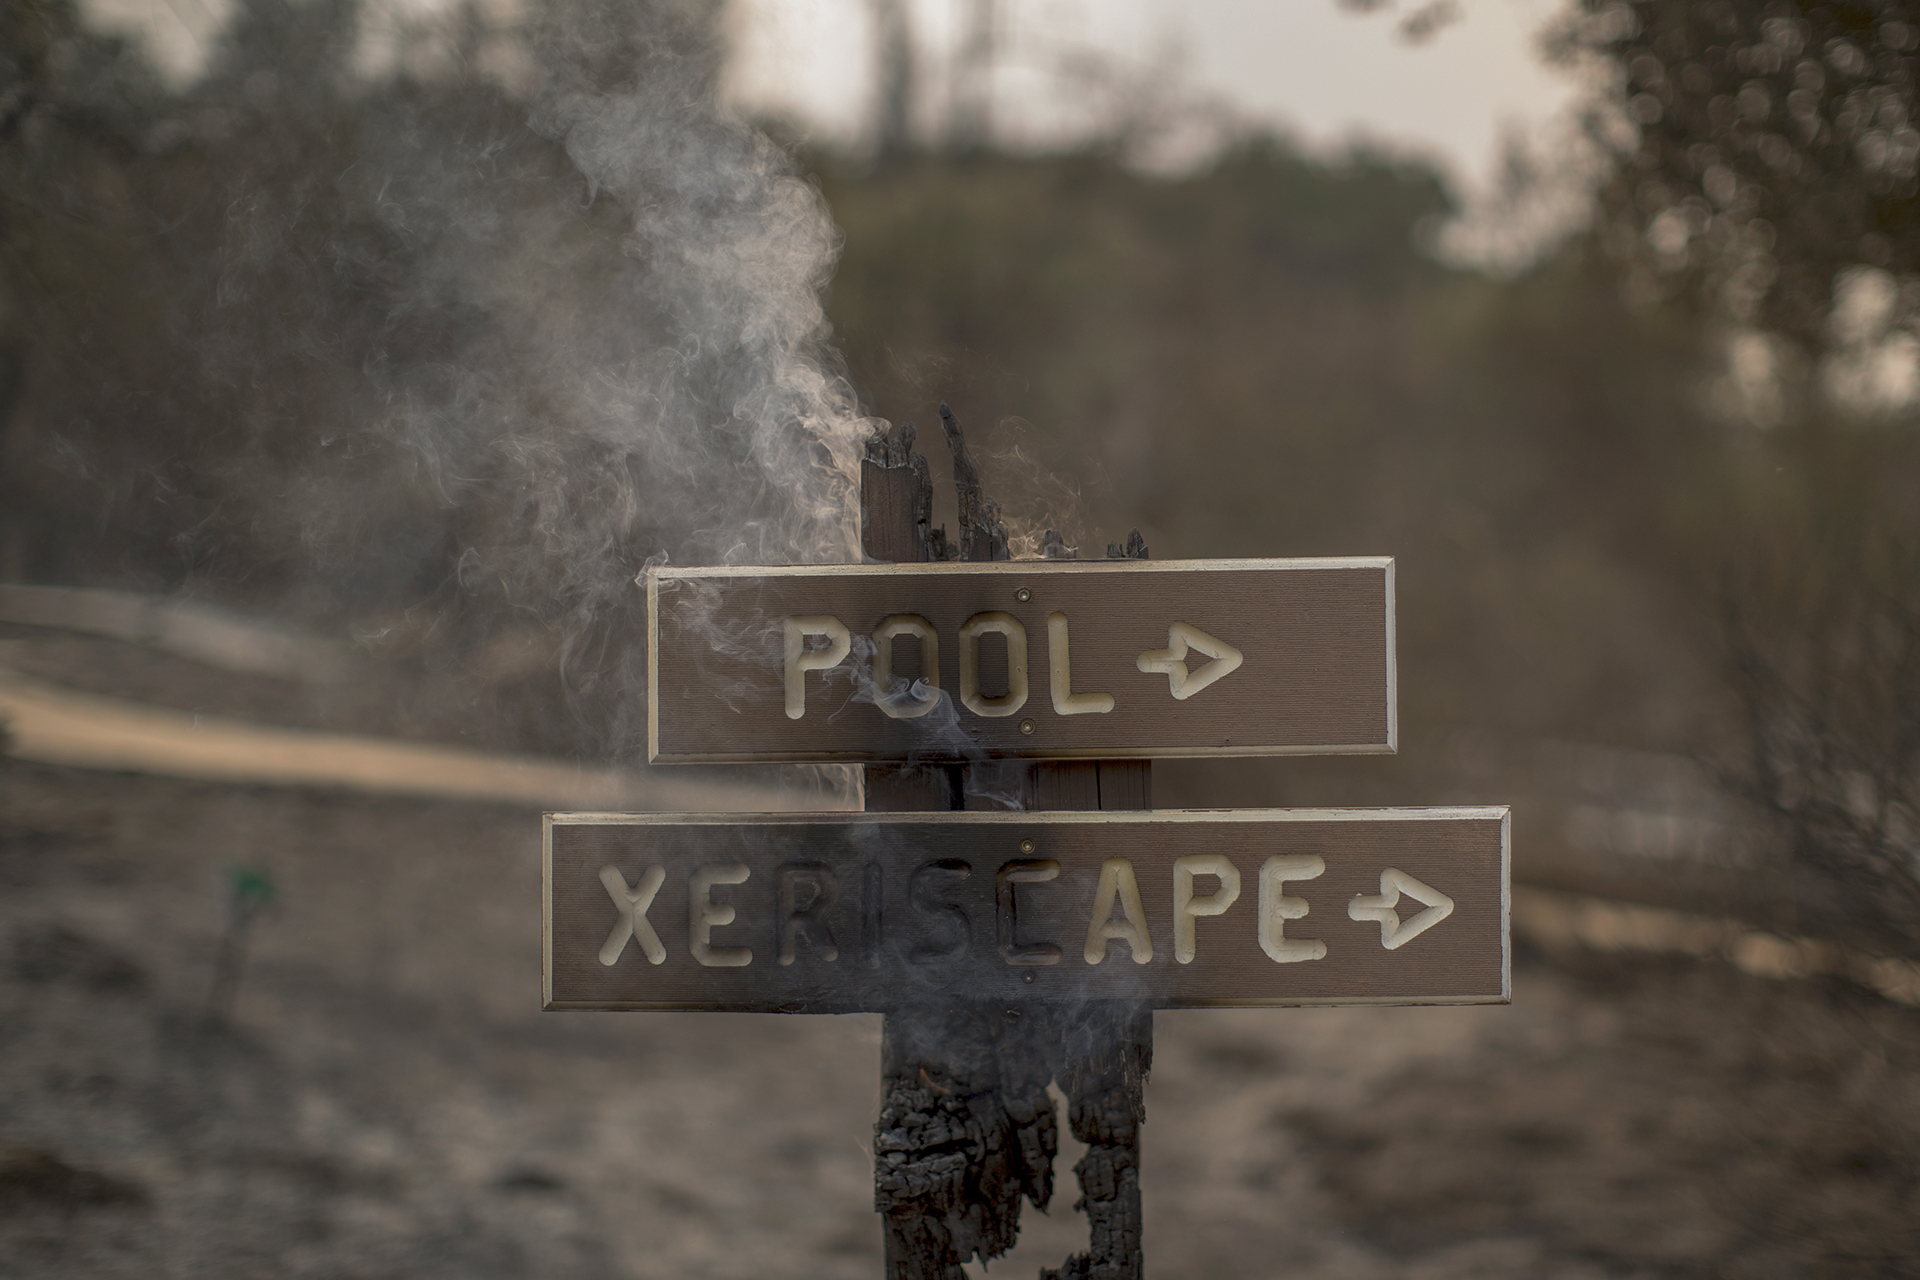 SANTA BARBARA, CA – JULY 09: A sign smolders near structures at Rancho Alegre Boy Scouts of America outdoor school that were destroyed by the Whittier Fire on July 9, 2017 near Santa Barbara, California. The Whittier Fire and the Alamo Fire together have blackened more than 30,000 acres of chaparral-covered hills in Ventura County. Statewide, about 5,000 firefighters are fighting 14 large wildfires. David McNew/Getty Images/AFP